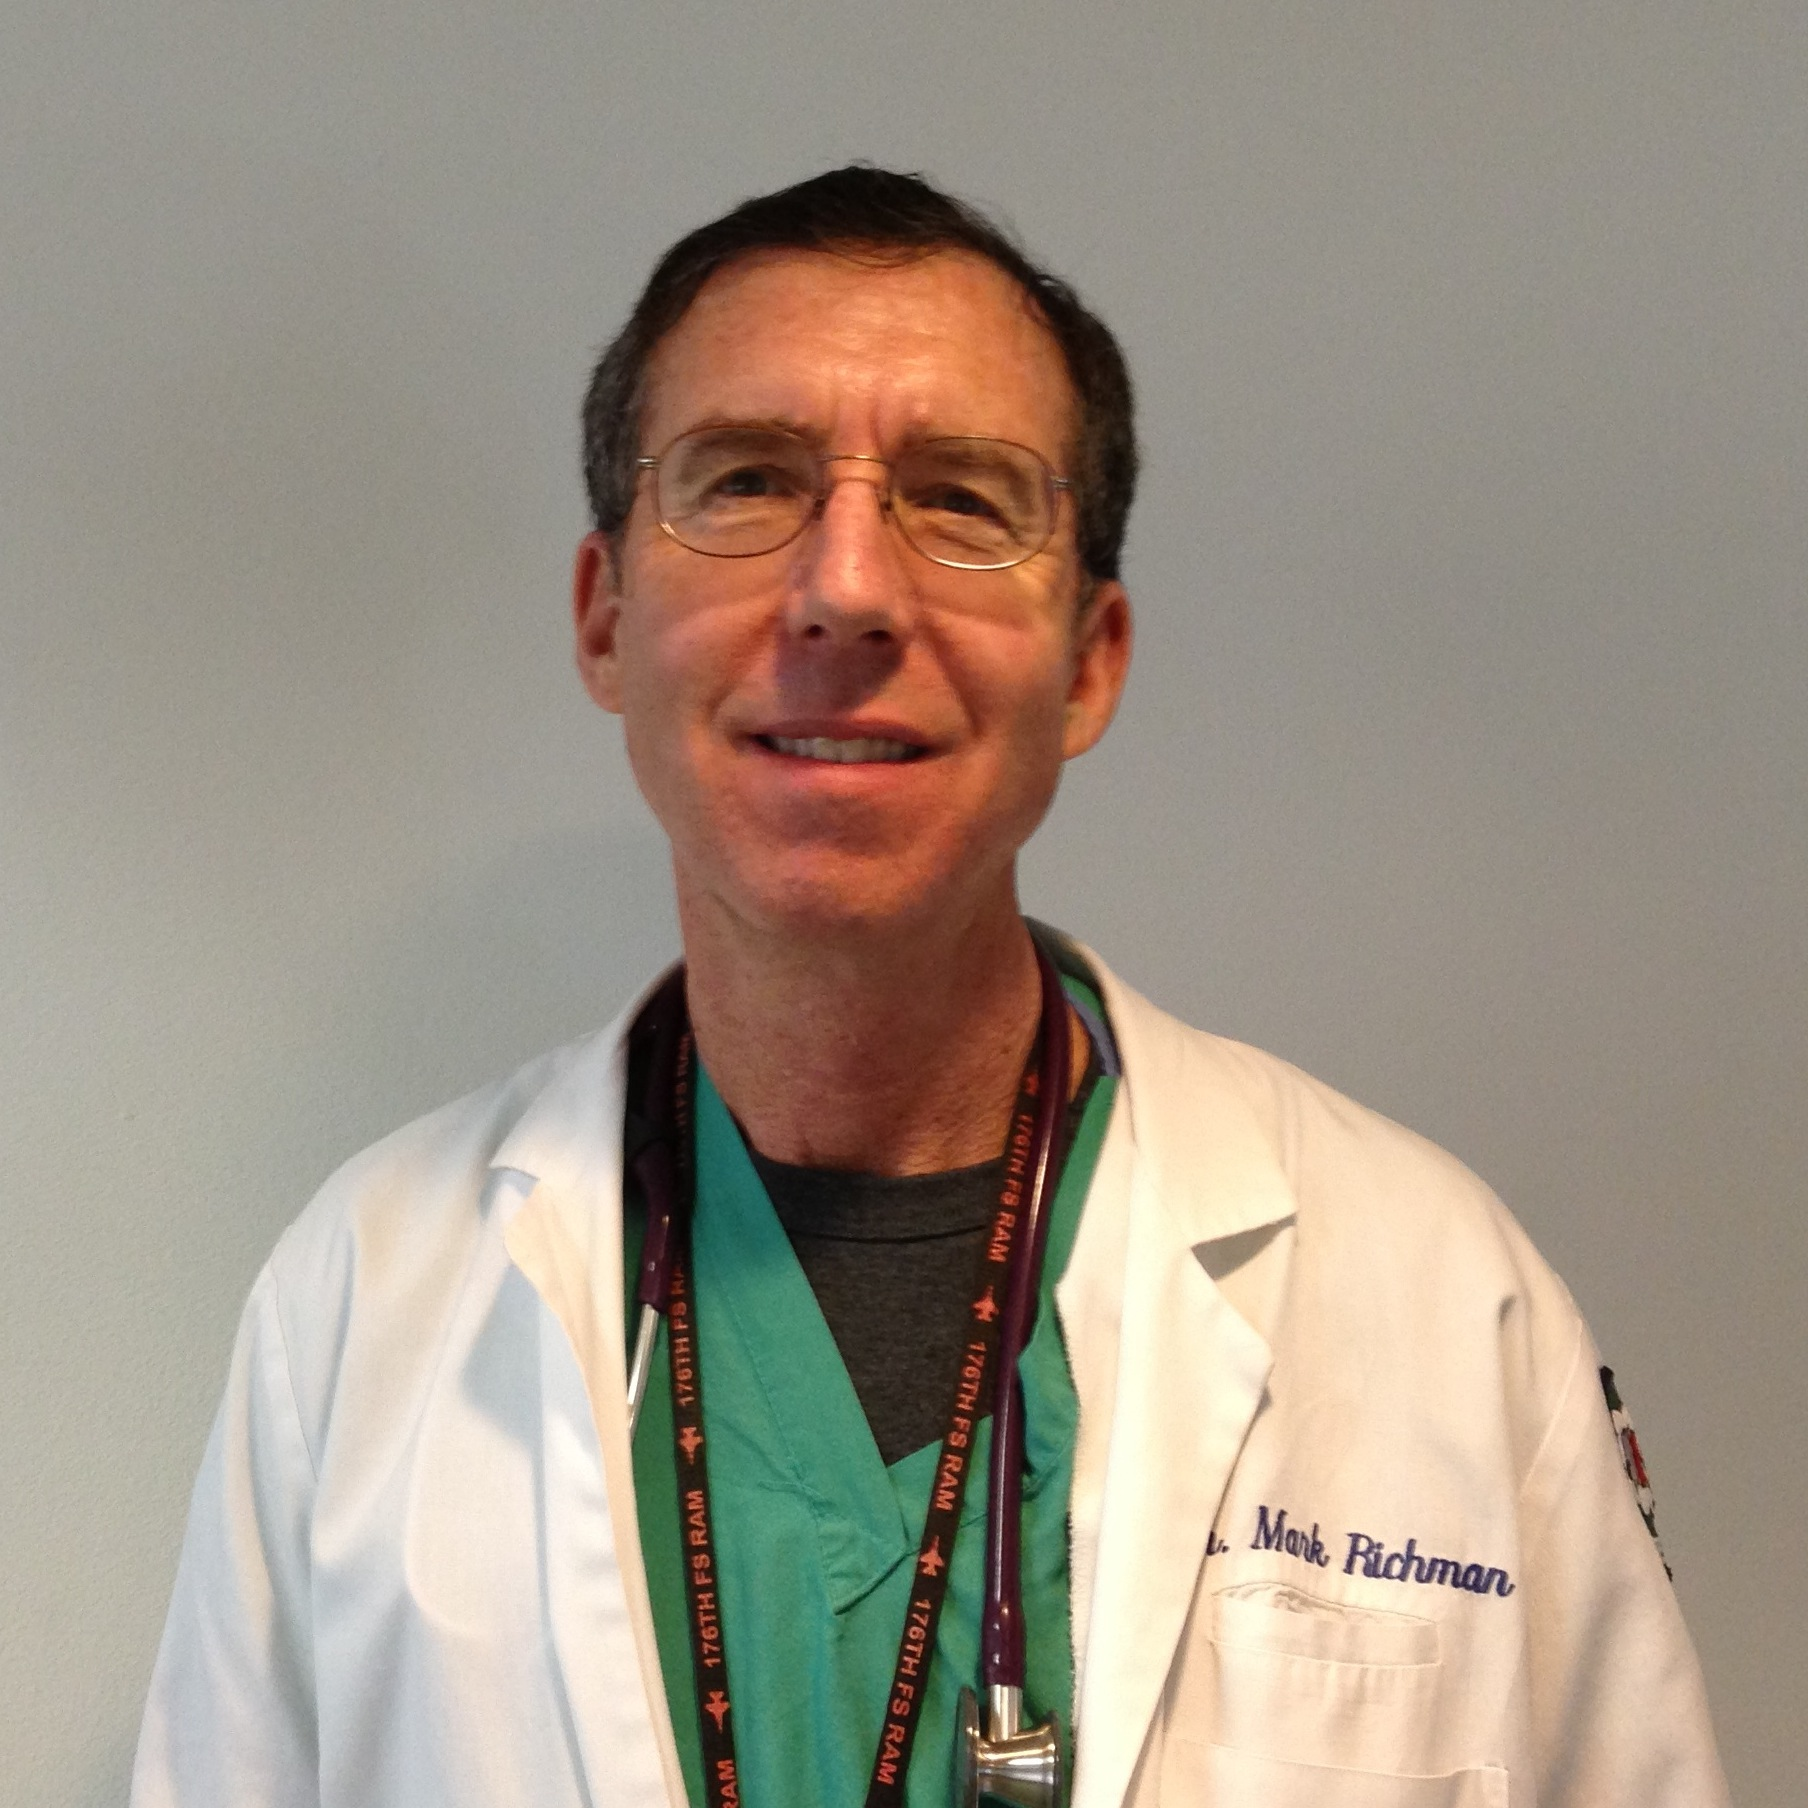 Dr. Mark Richman